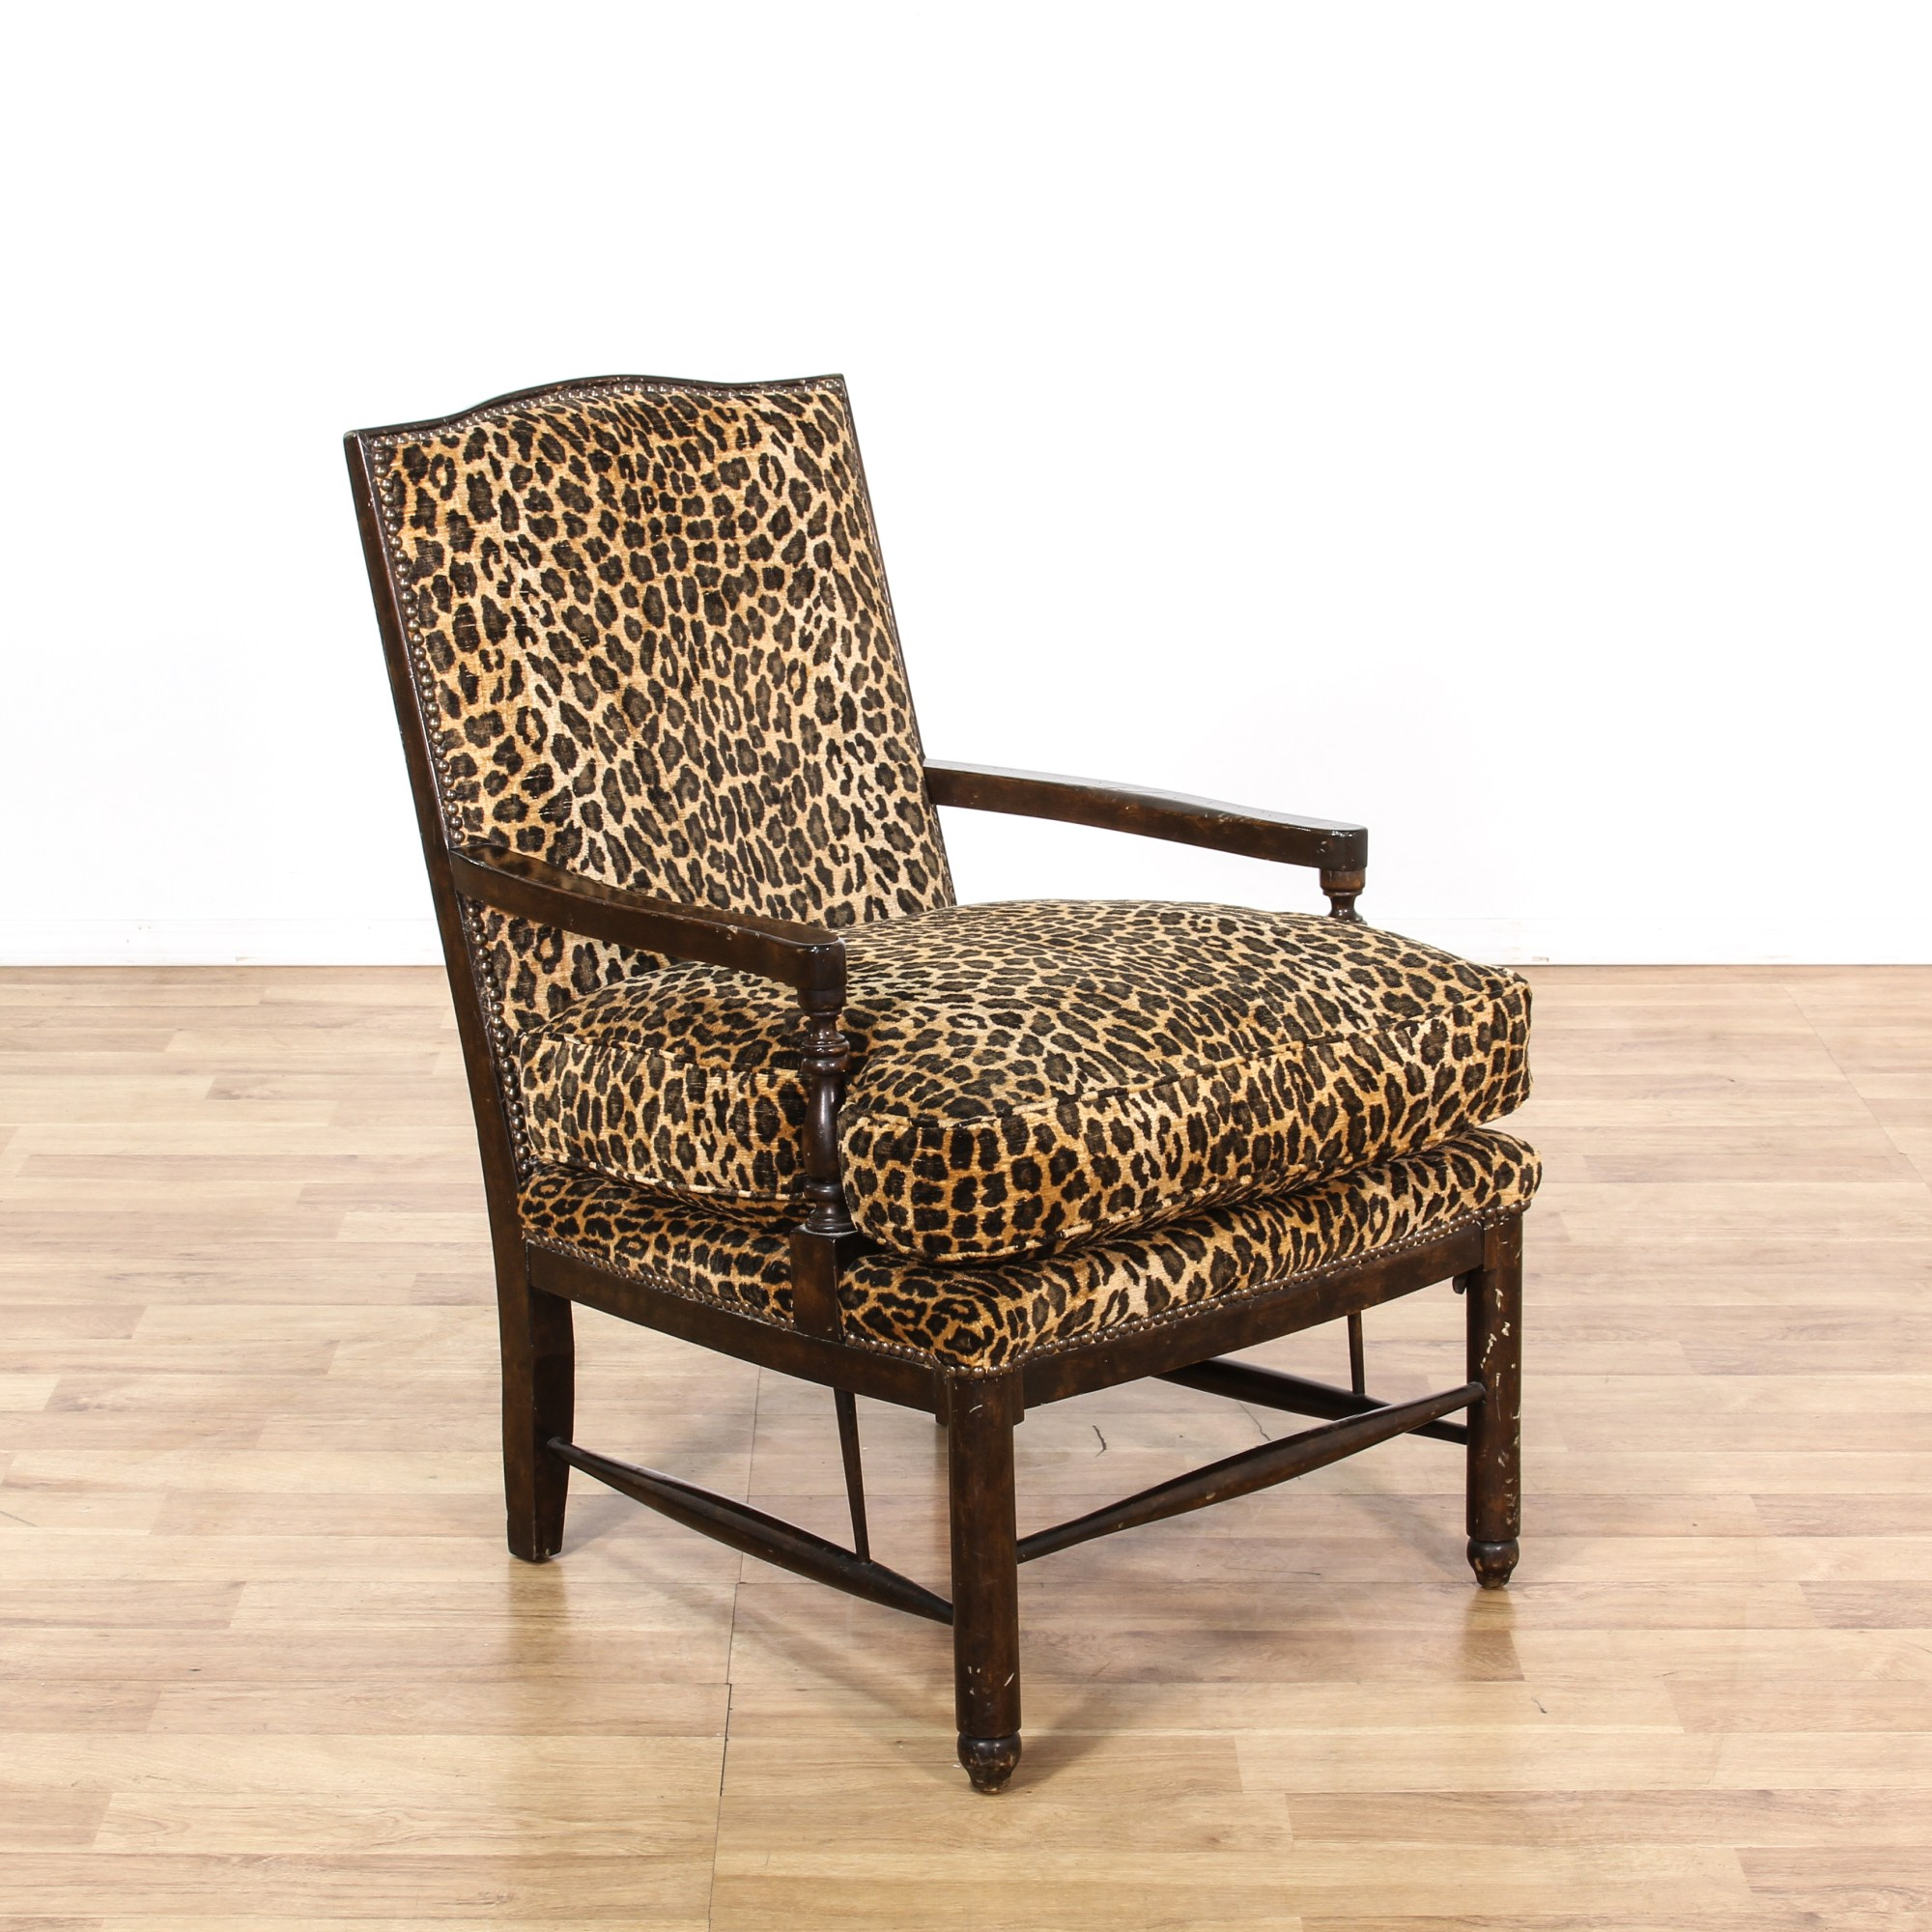 Cheetah Chair Leopard Print Carved Wood Accent Chair Loveseat Vintage